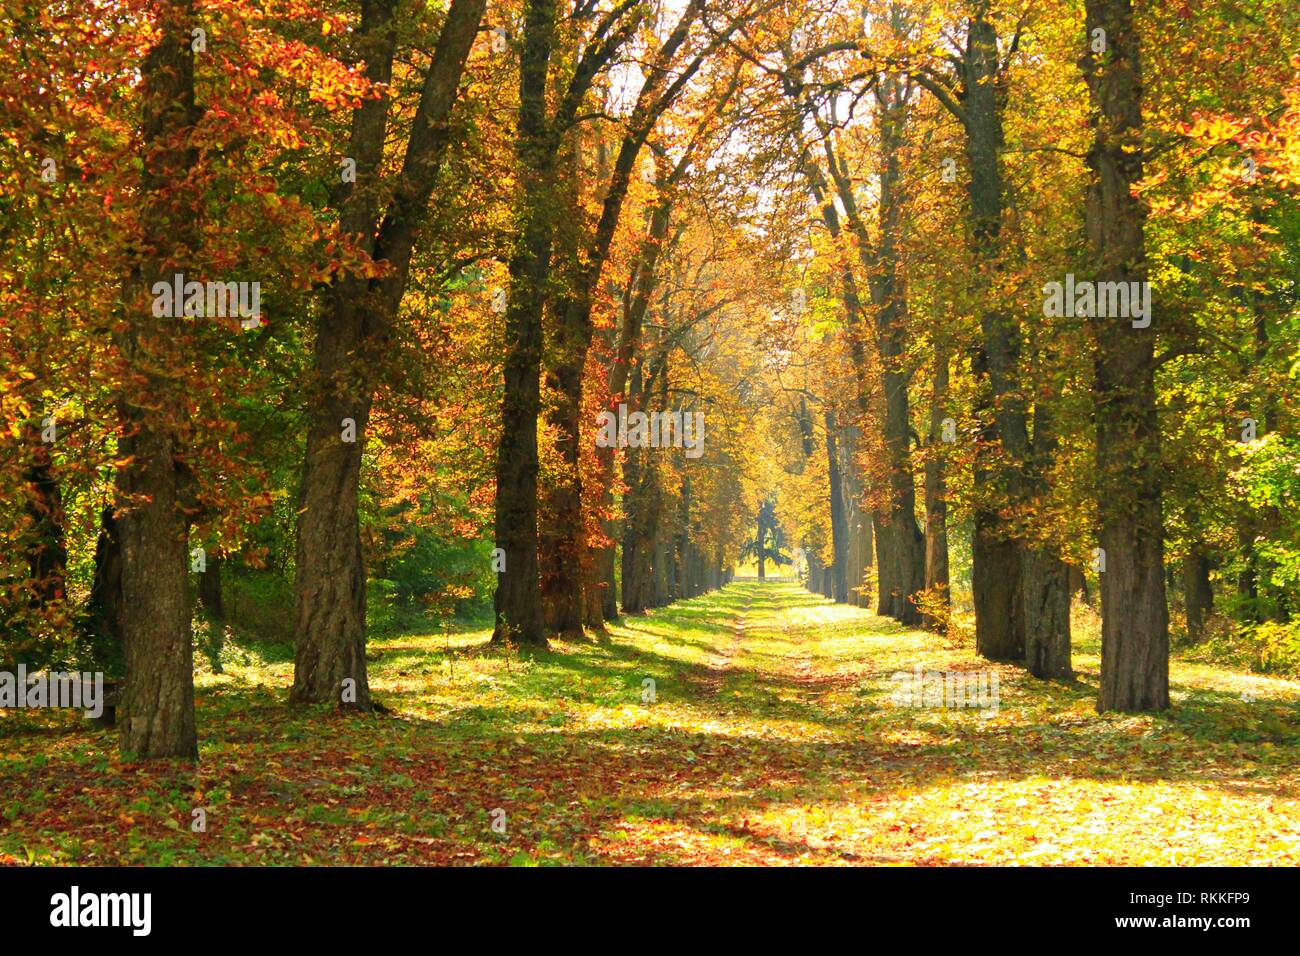 Autumn park with beautiful trees covered yellow and red foliage. Seasonal specific. Multicolored trees with path in autumn park. - Stock Image